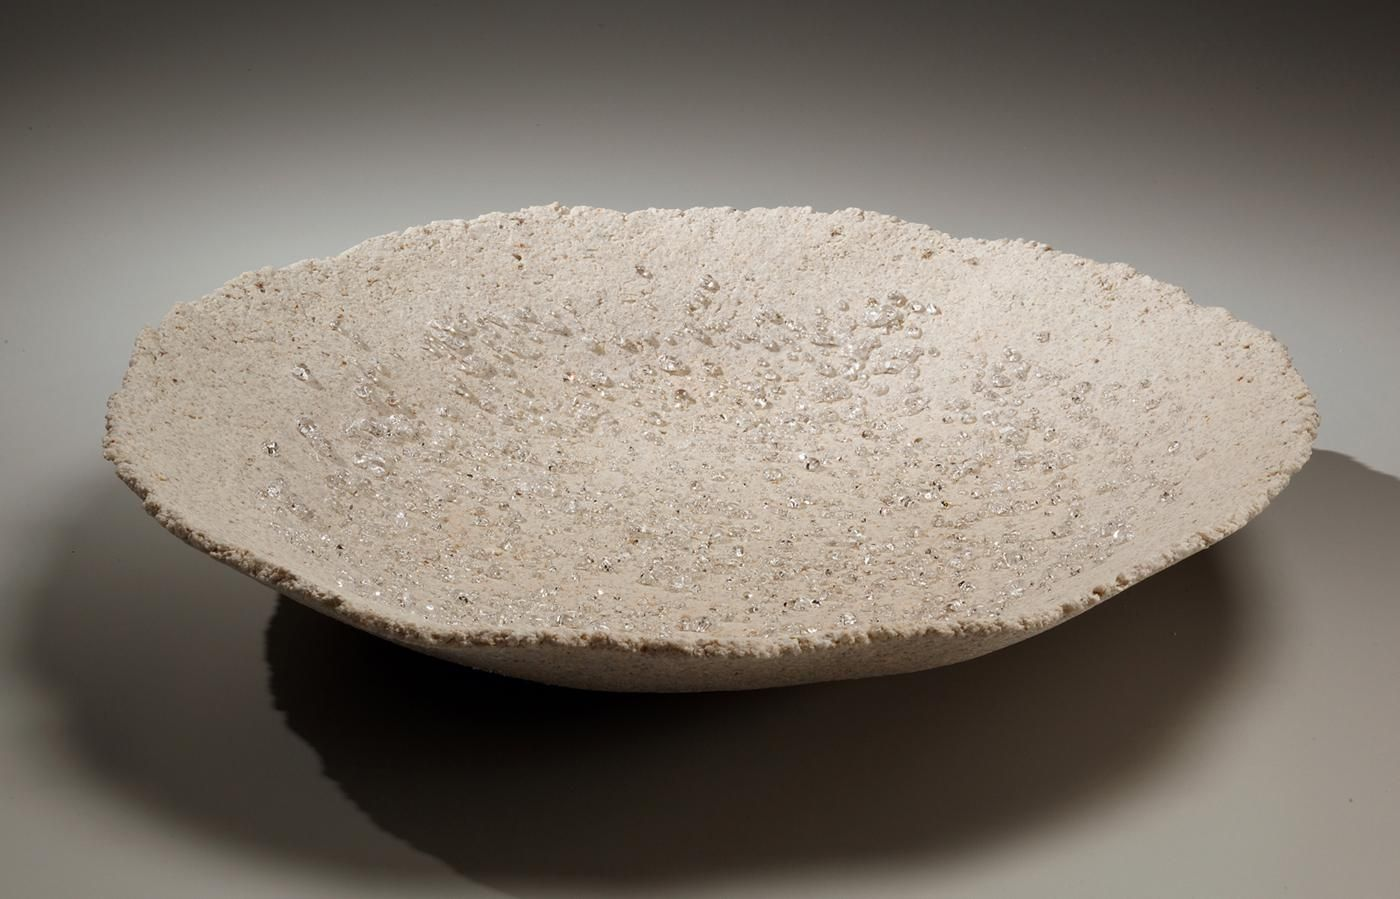 Round platter with scattered clear glass droplets and pinched rough rim, 2014